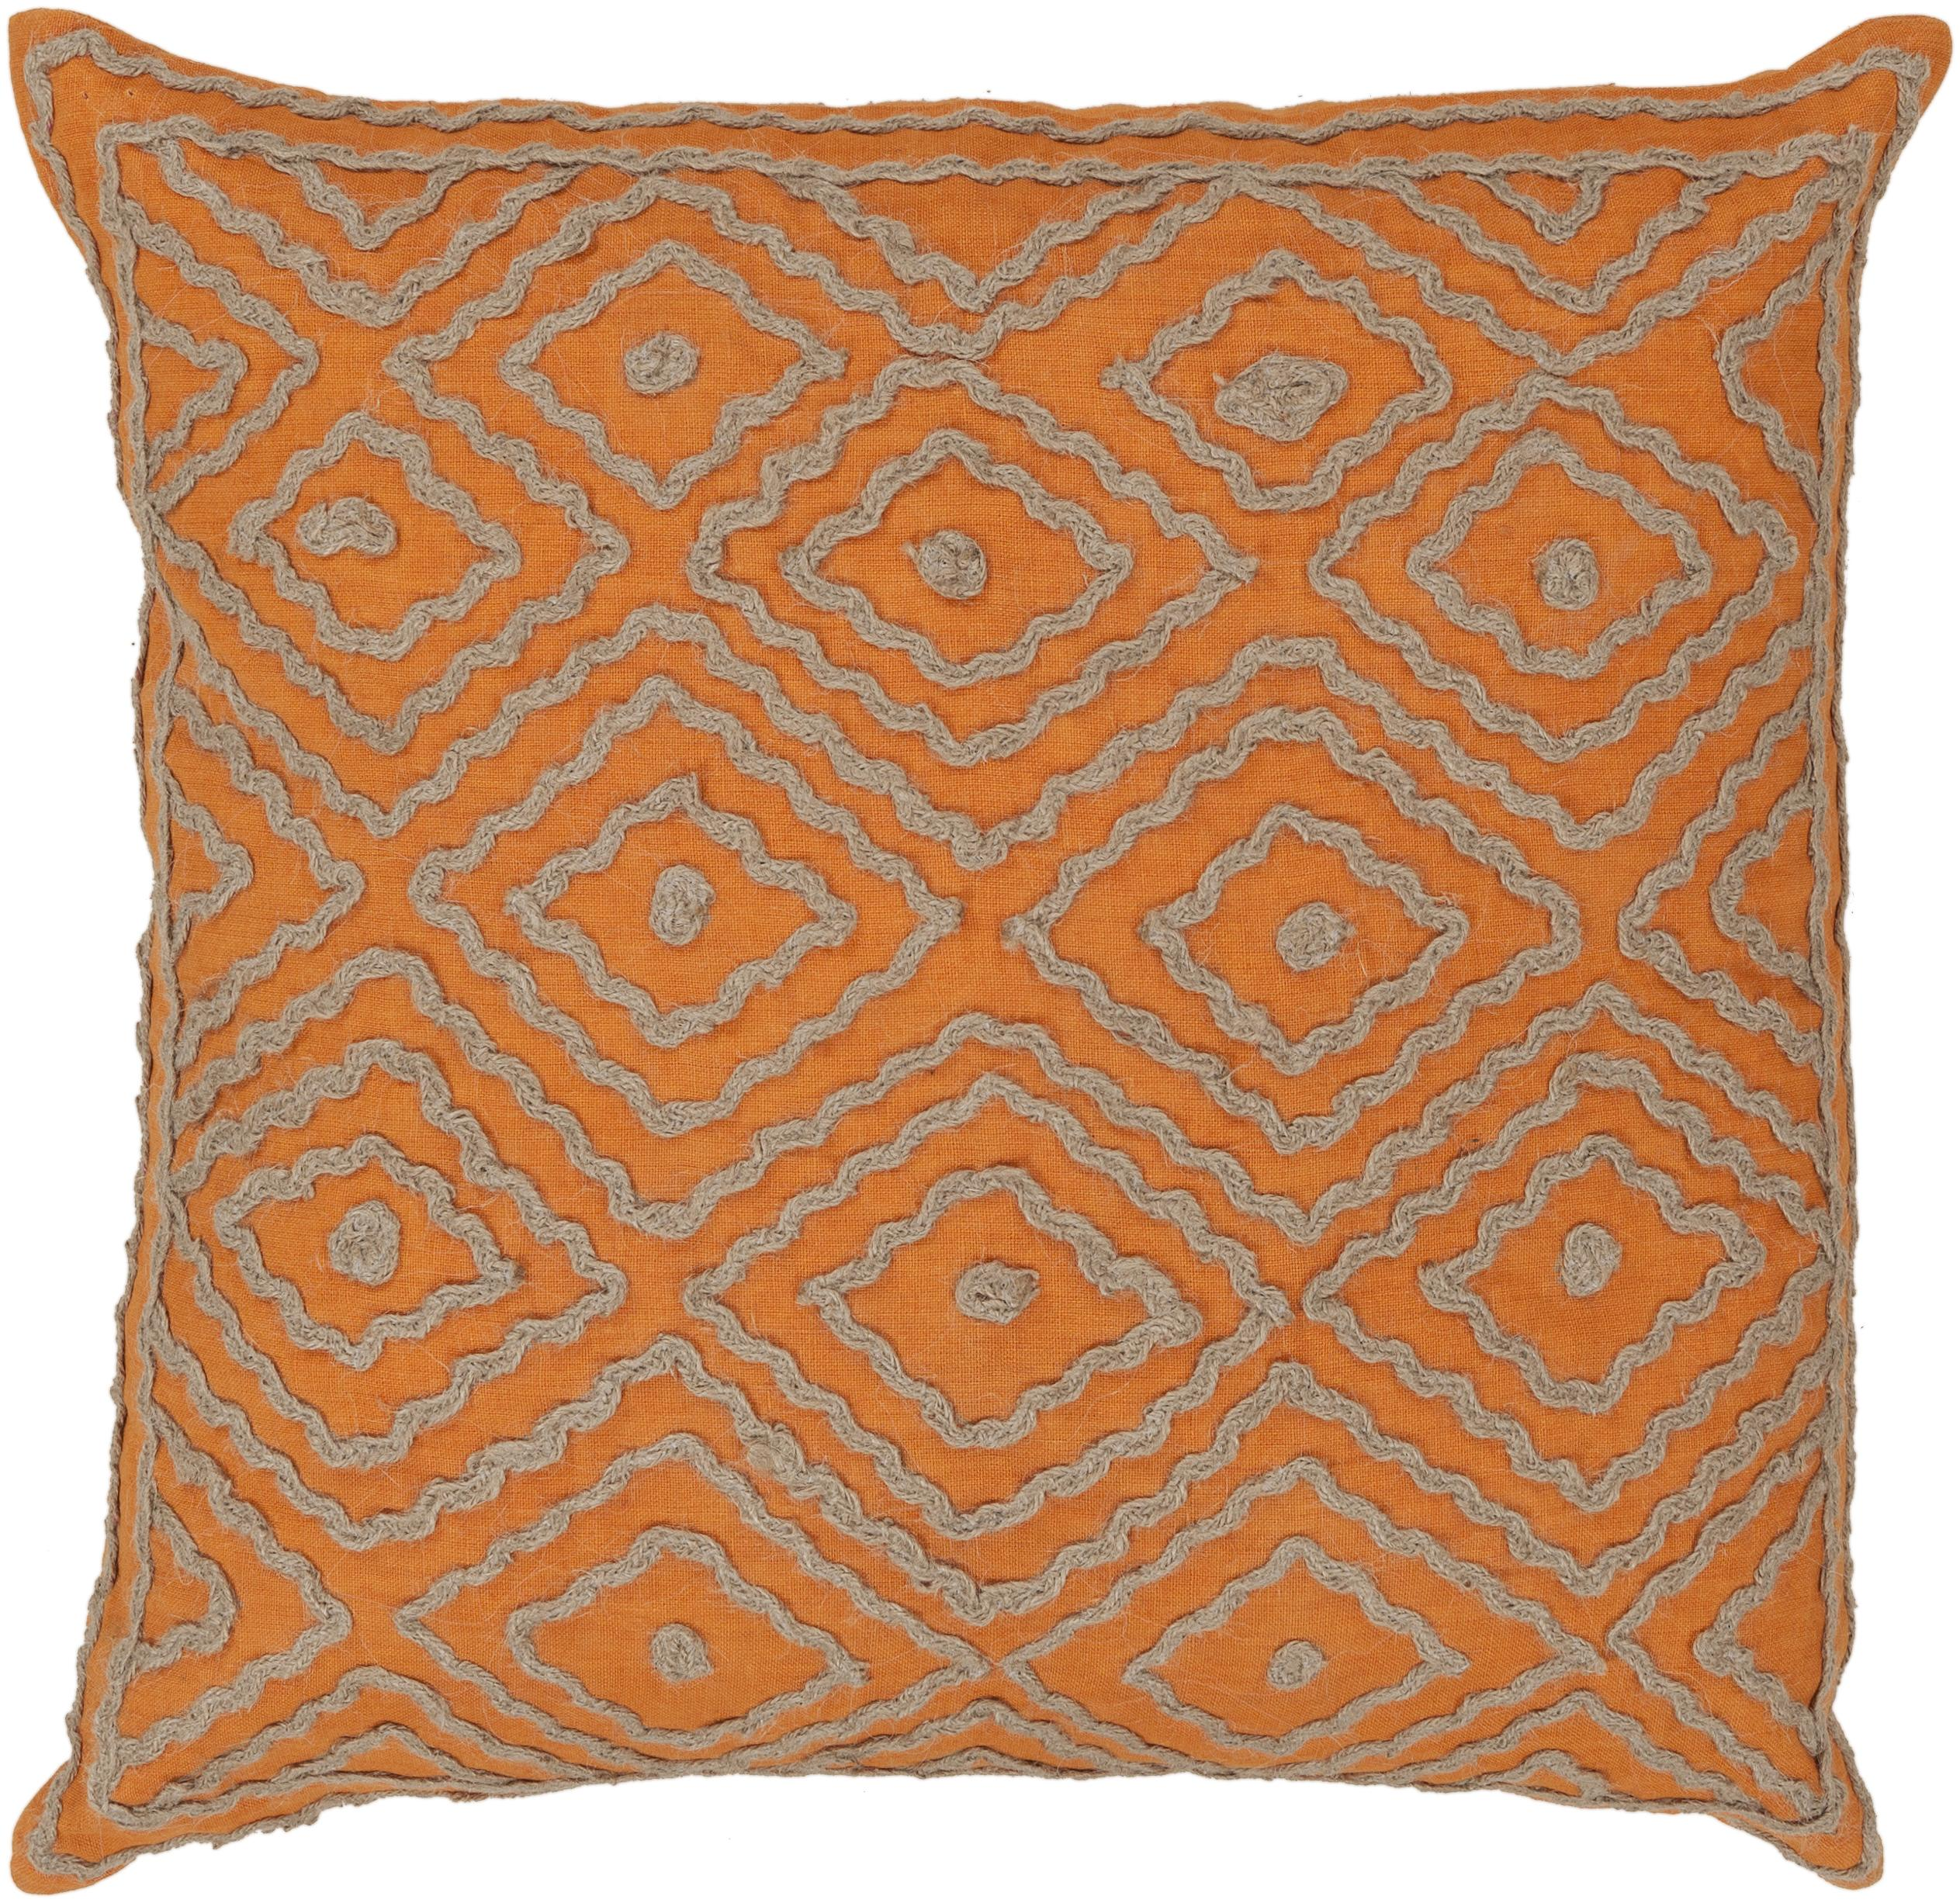 "Surya Rugs Pillows 18"" x 18"" Pillow - Item Number: LD029-1818P"